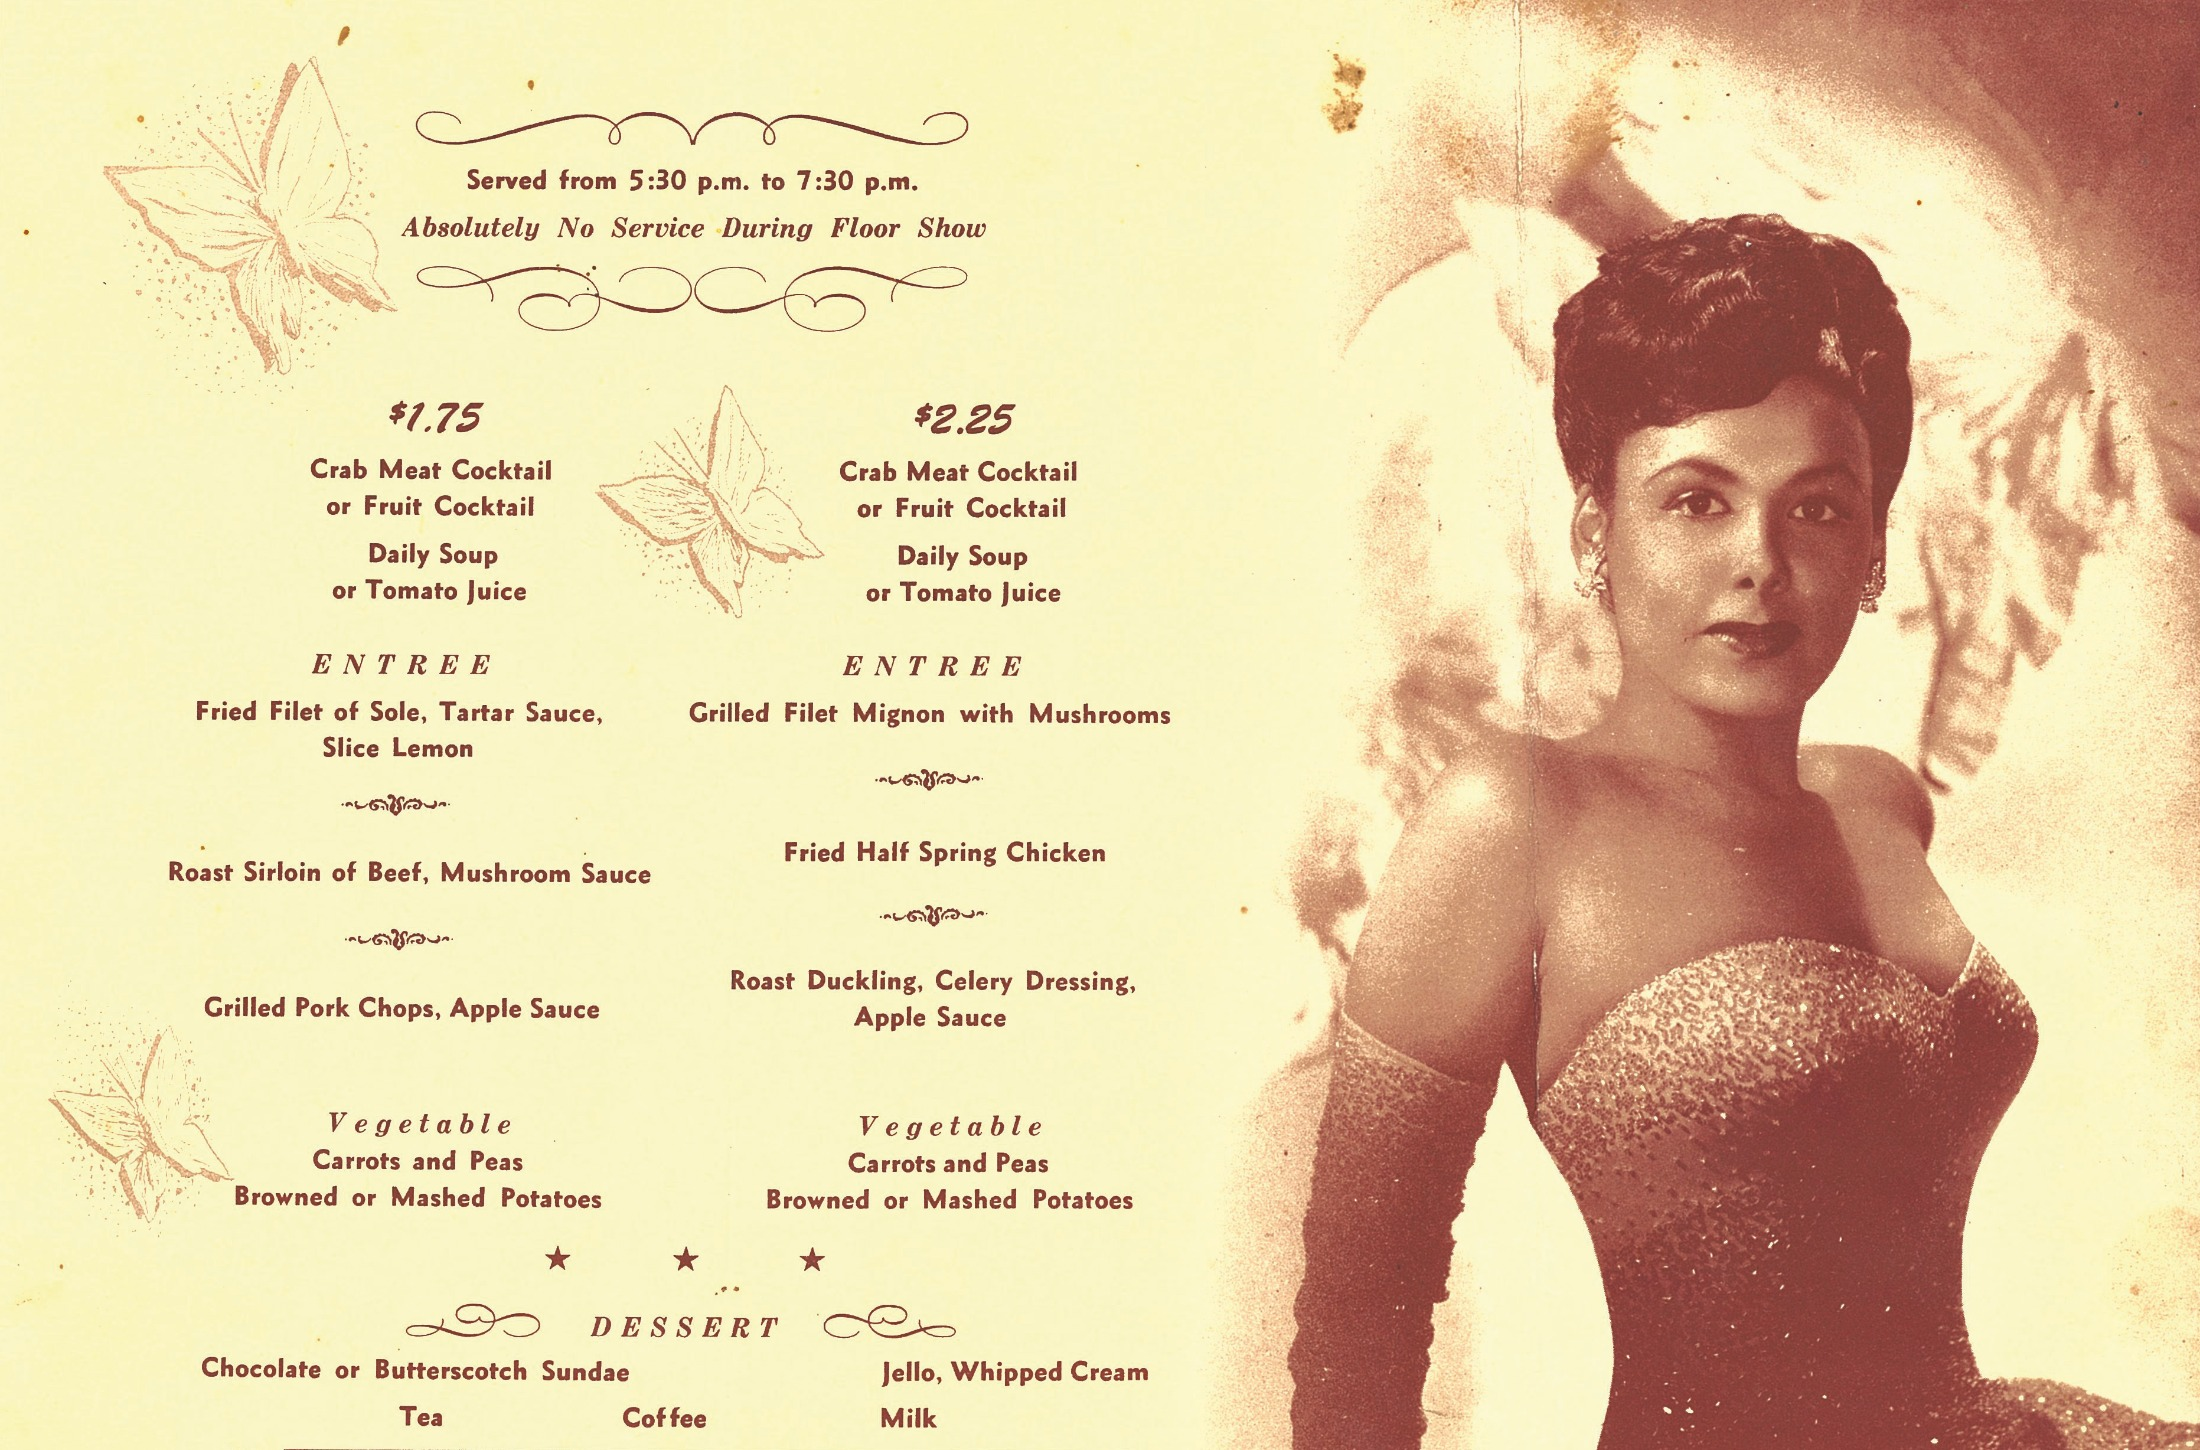 The Cave menu featuring singer Lena Horne. Photo courtesy of Neptoon Records Archives.